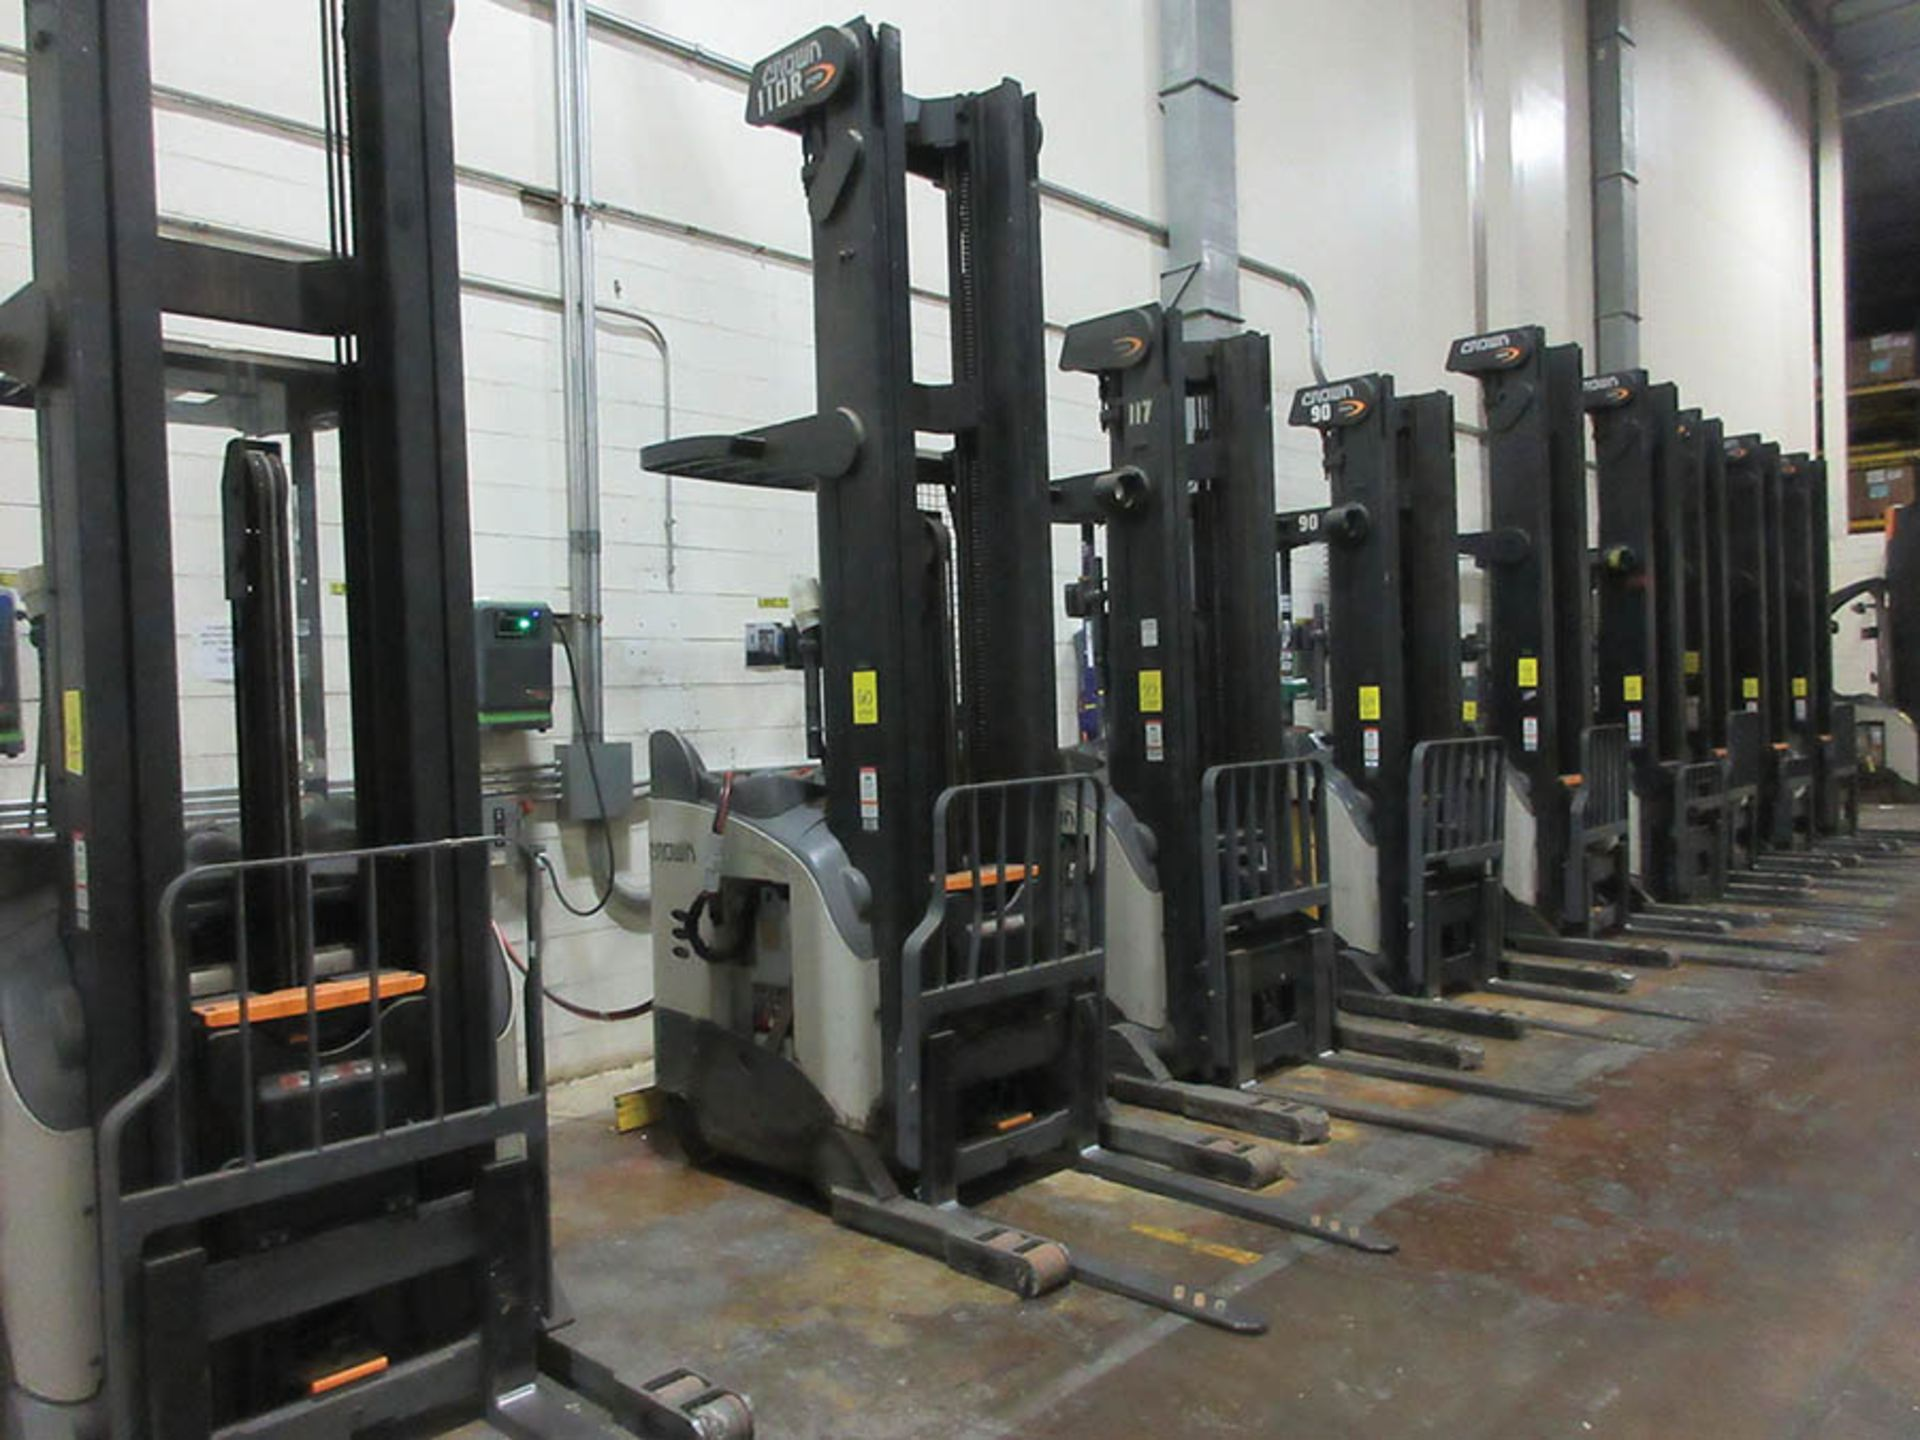 Lot 60 - 2016 CROWN REACH TRUCK, 4,500 LB. CAP., MODEL: RR5725-45, 36V., 140'' MAST COLLAPSED HEIGHT, 321''